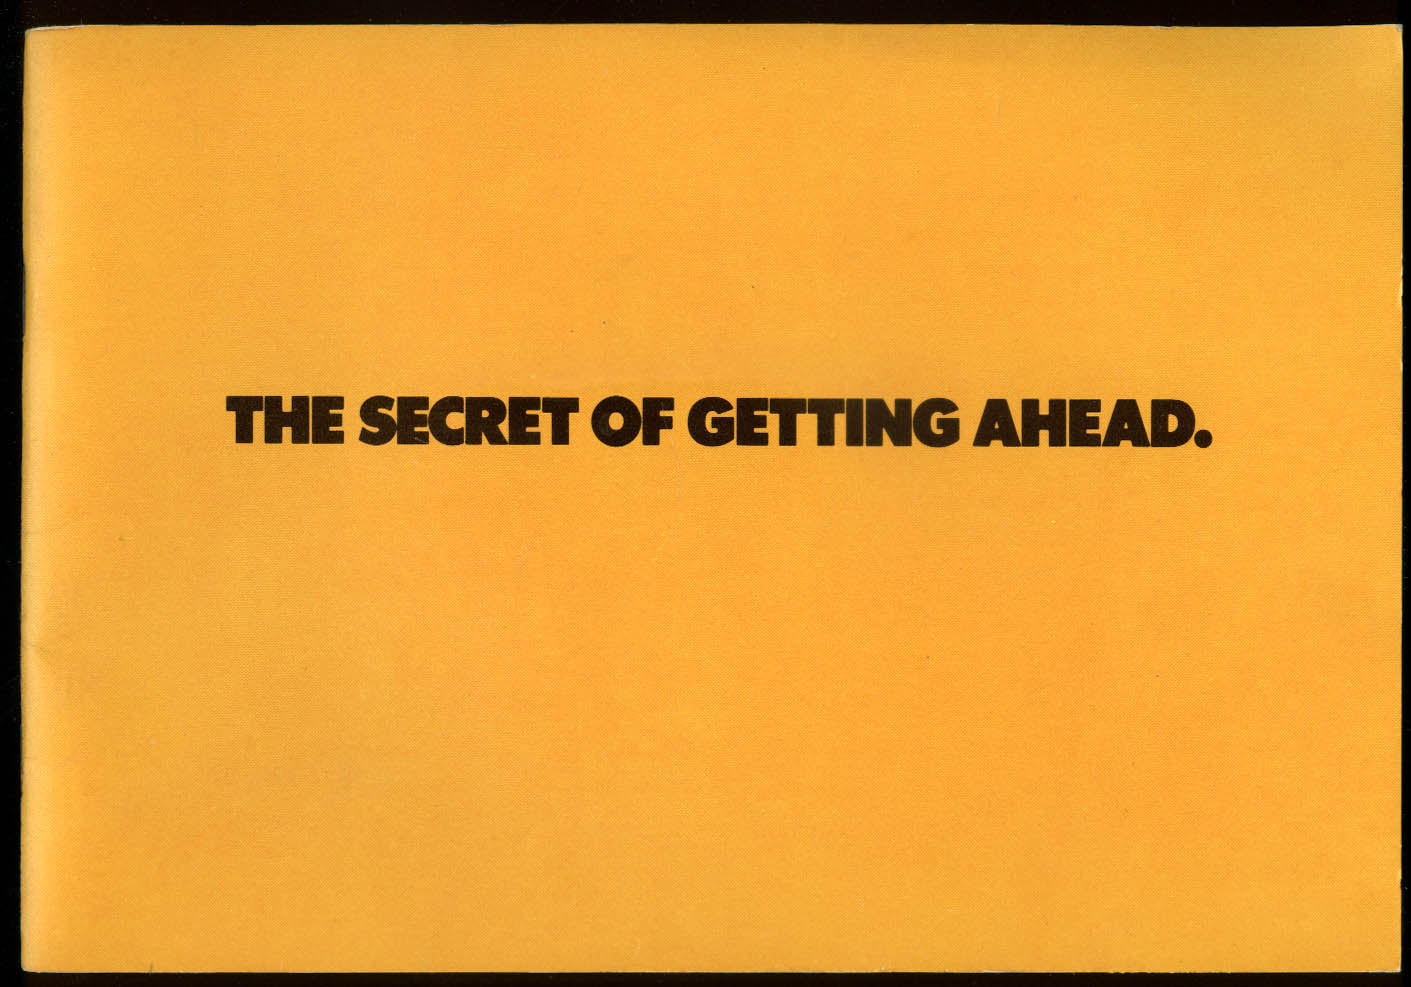 US Army Secret of Getting Ahead recruitment brochure 1970